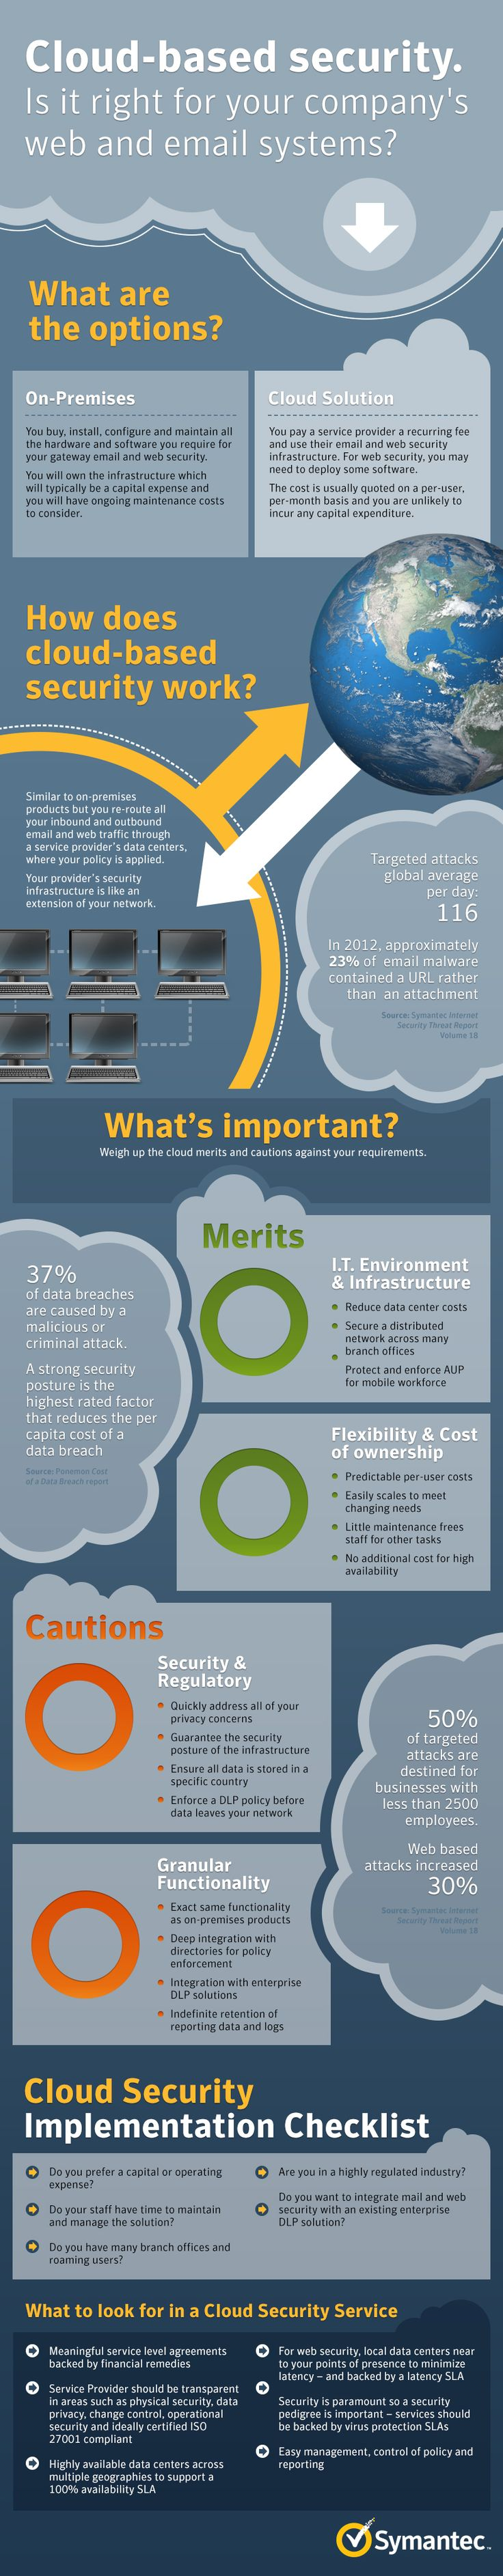 [INFOGRAPHIC] Cloud Based Security